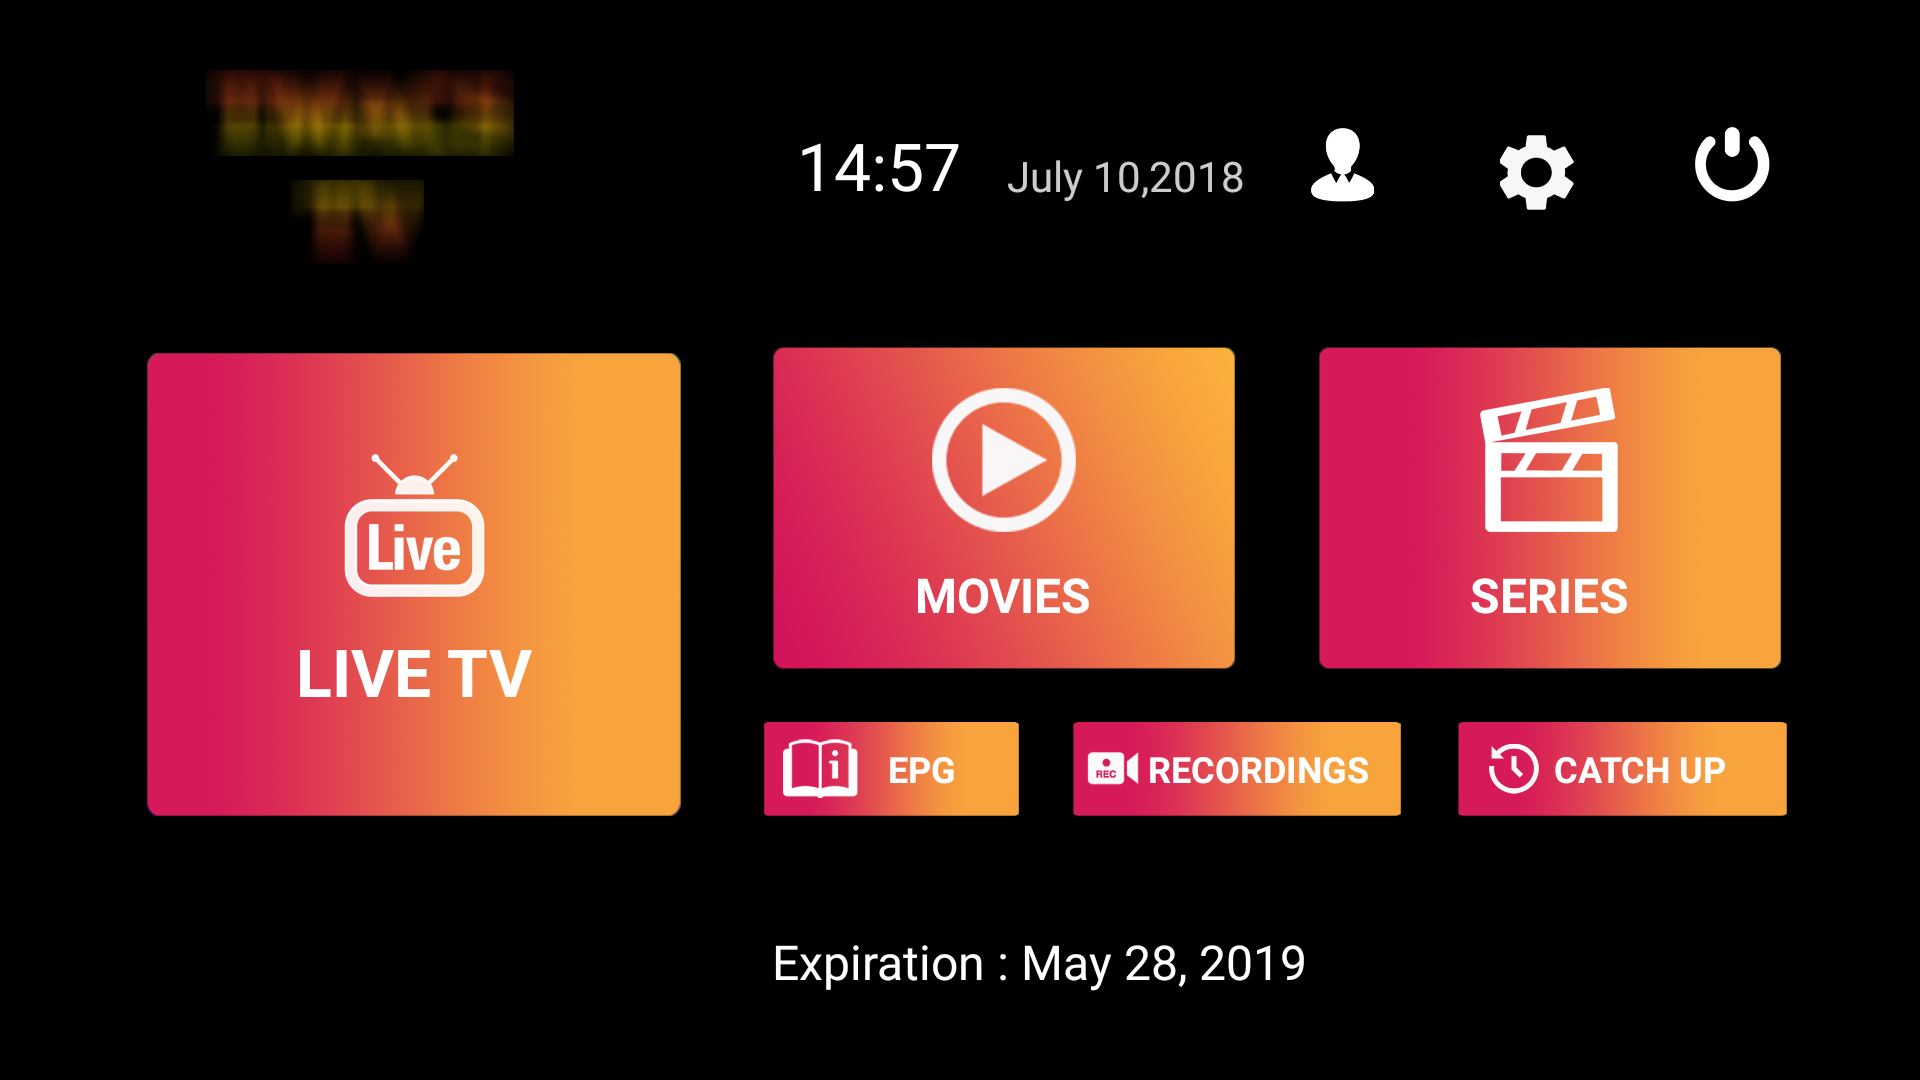 Pin by IPTV Smarters on IPTV Smarters - Apps For IPTV in 2019 | App